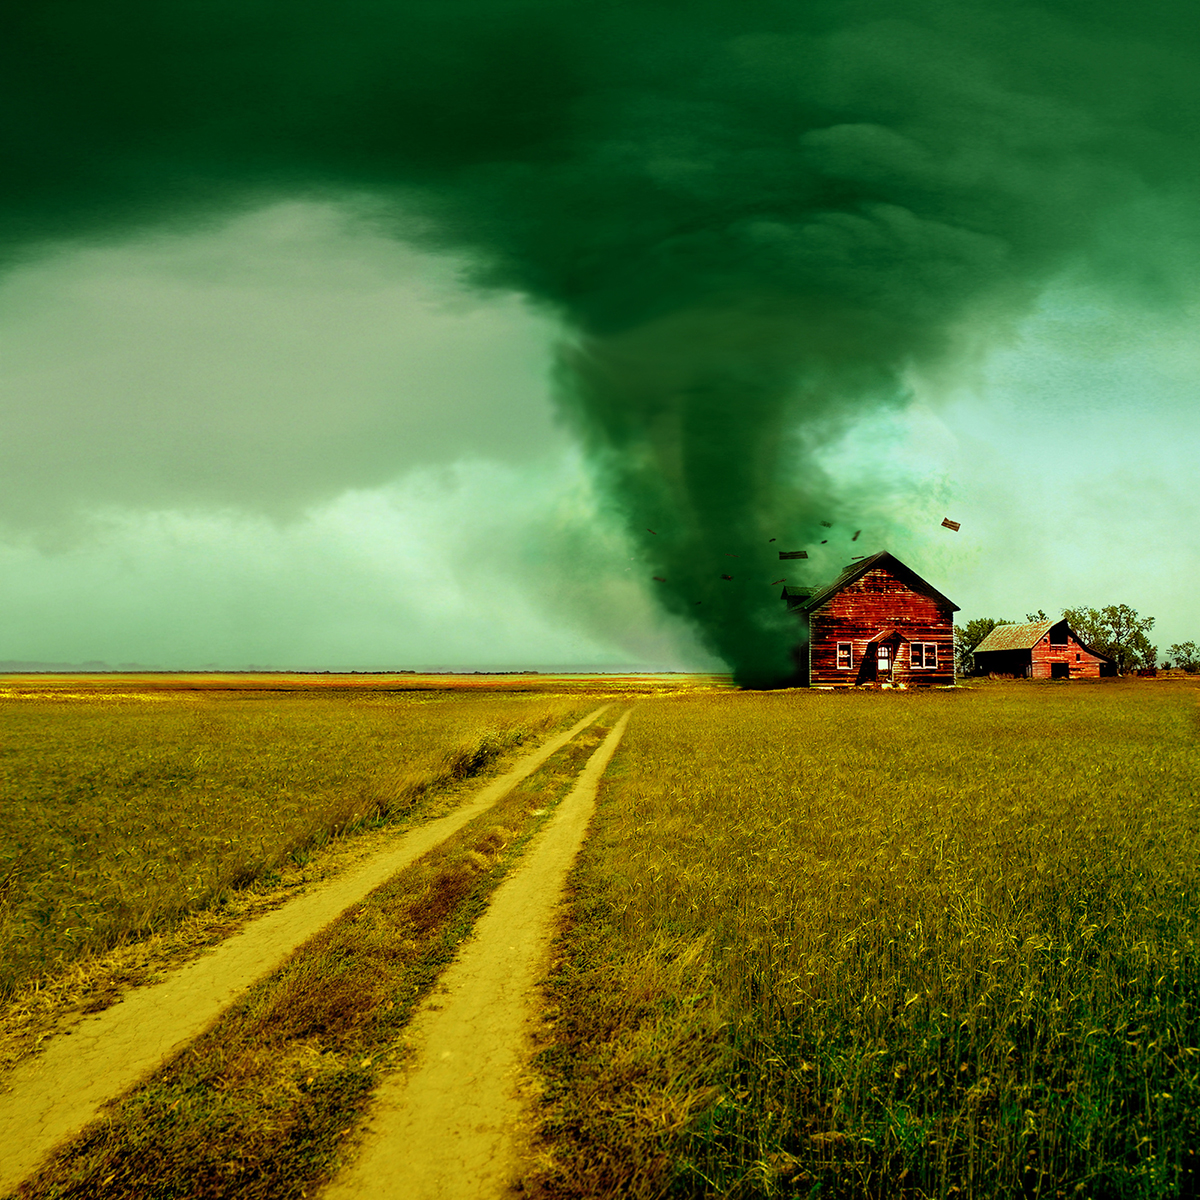 Spring Means Start of Tornado Season